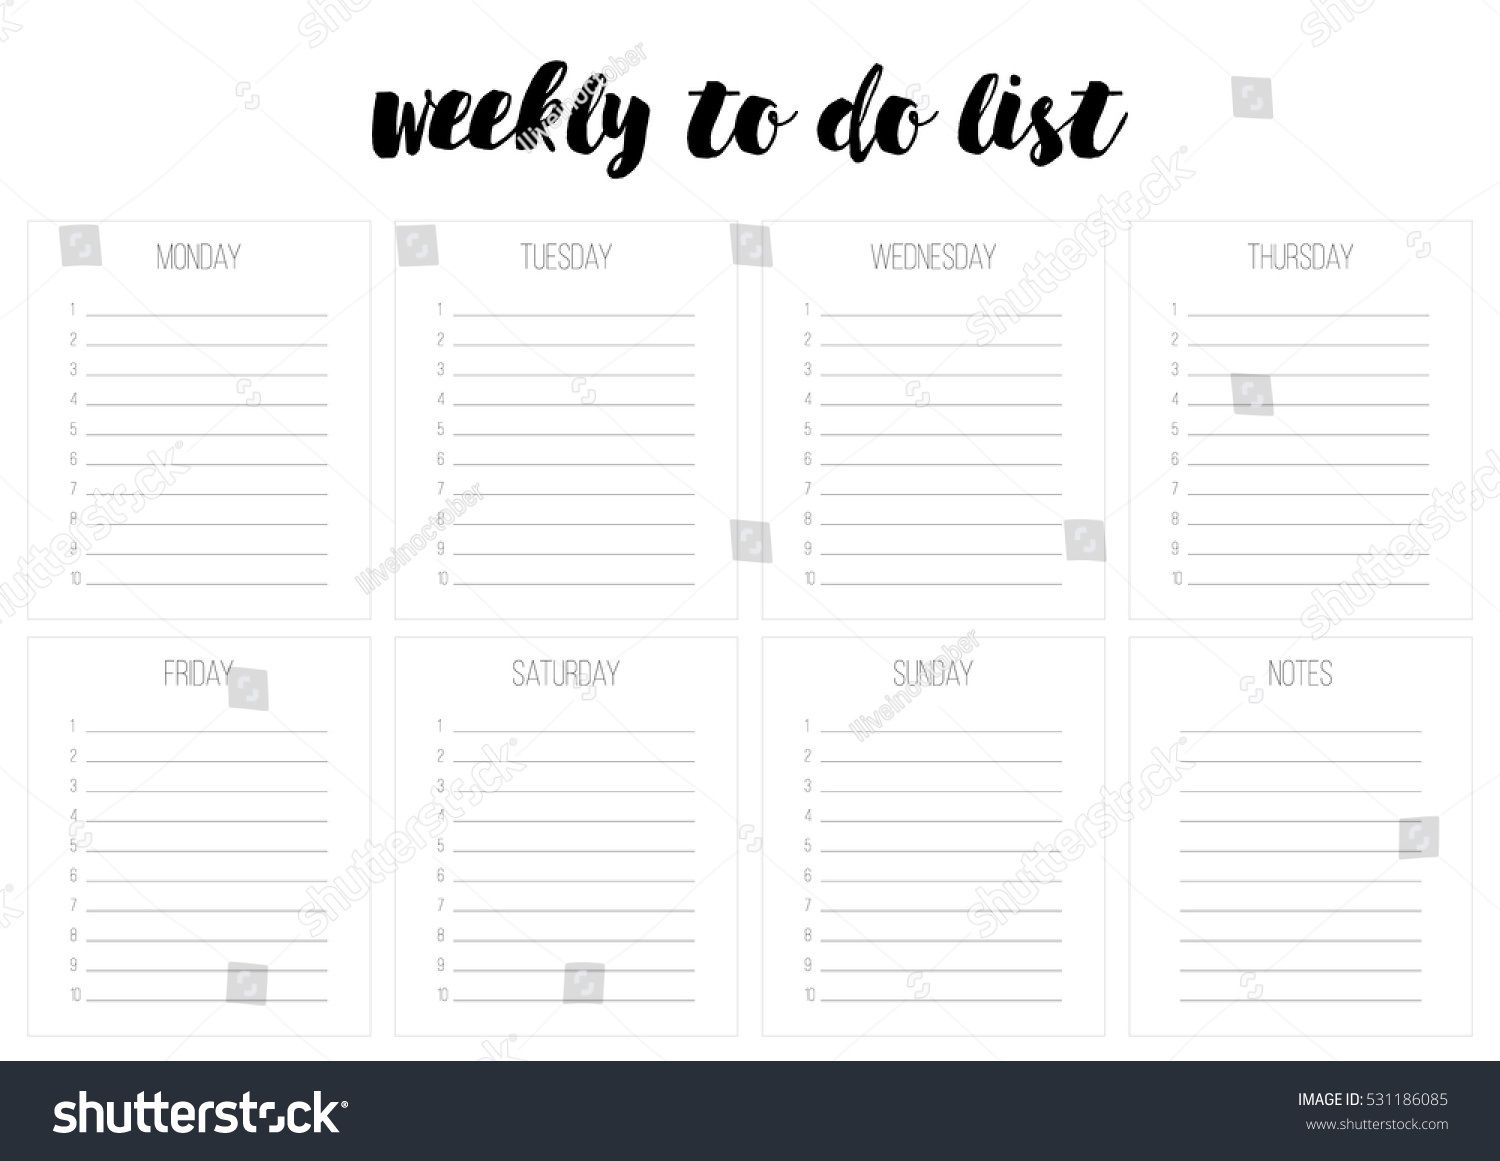 008 Exceptional Weekly Todo List Template Design  To Do Pinterest Task Excel Daily PdfFull